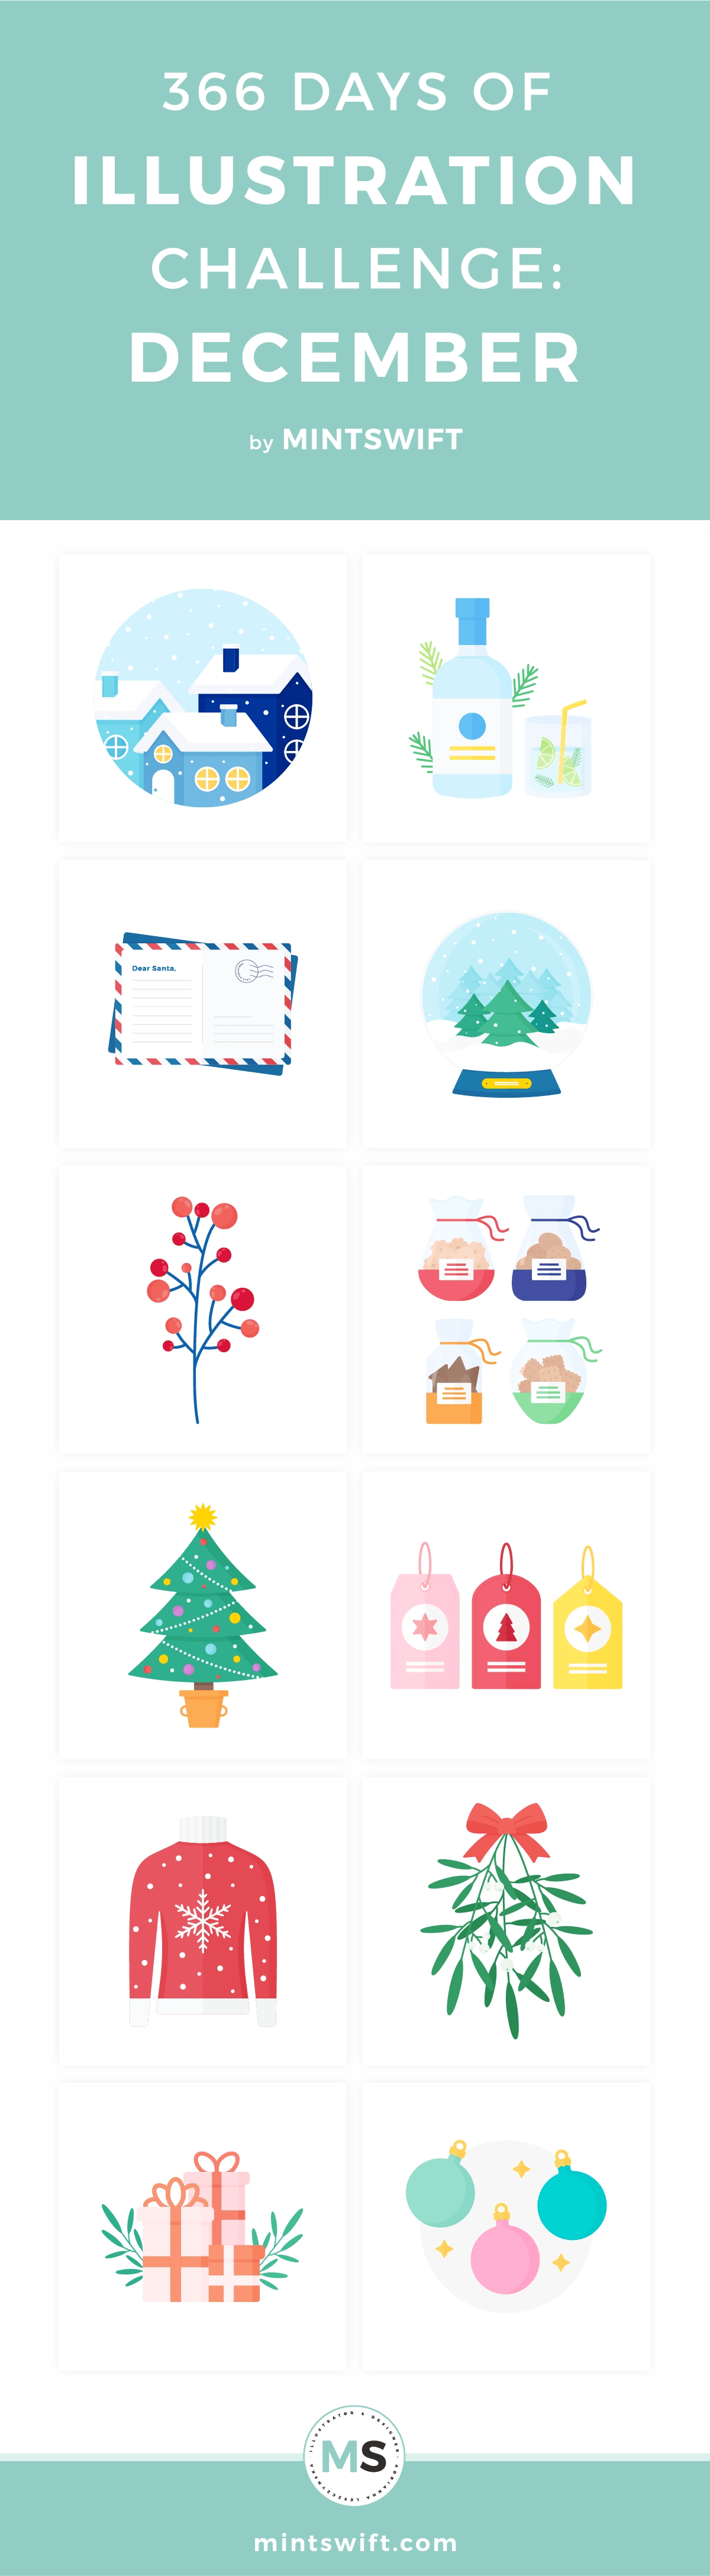 366 Days of Illustration Challenge - December by MintSwift. Top 12 vector illustrations about Christmas & Winter from the twelfth month of one year of illustration challenge in flat design style. Click through to see all designs at mintswift.com #mintswift by Adrianna Leszczynska #illustration #illustrationchallenge #flatillustration #vectorart #illustrator #flatdesign #vectorillustration #digitalillustration #vectorart #mintswiftportfolio #mintswiftillustrations